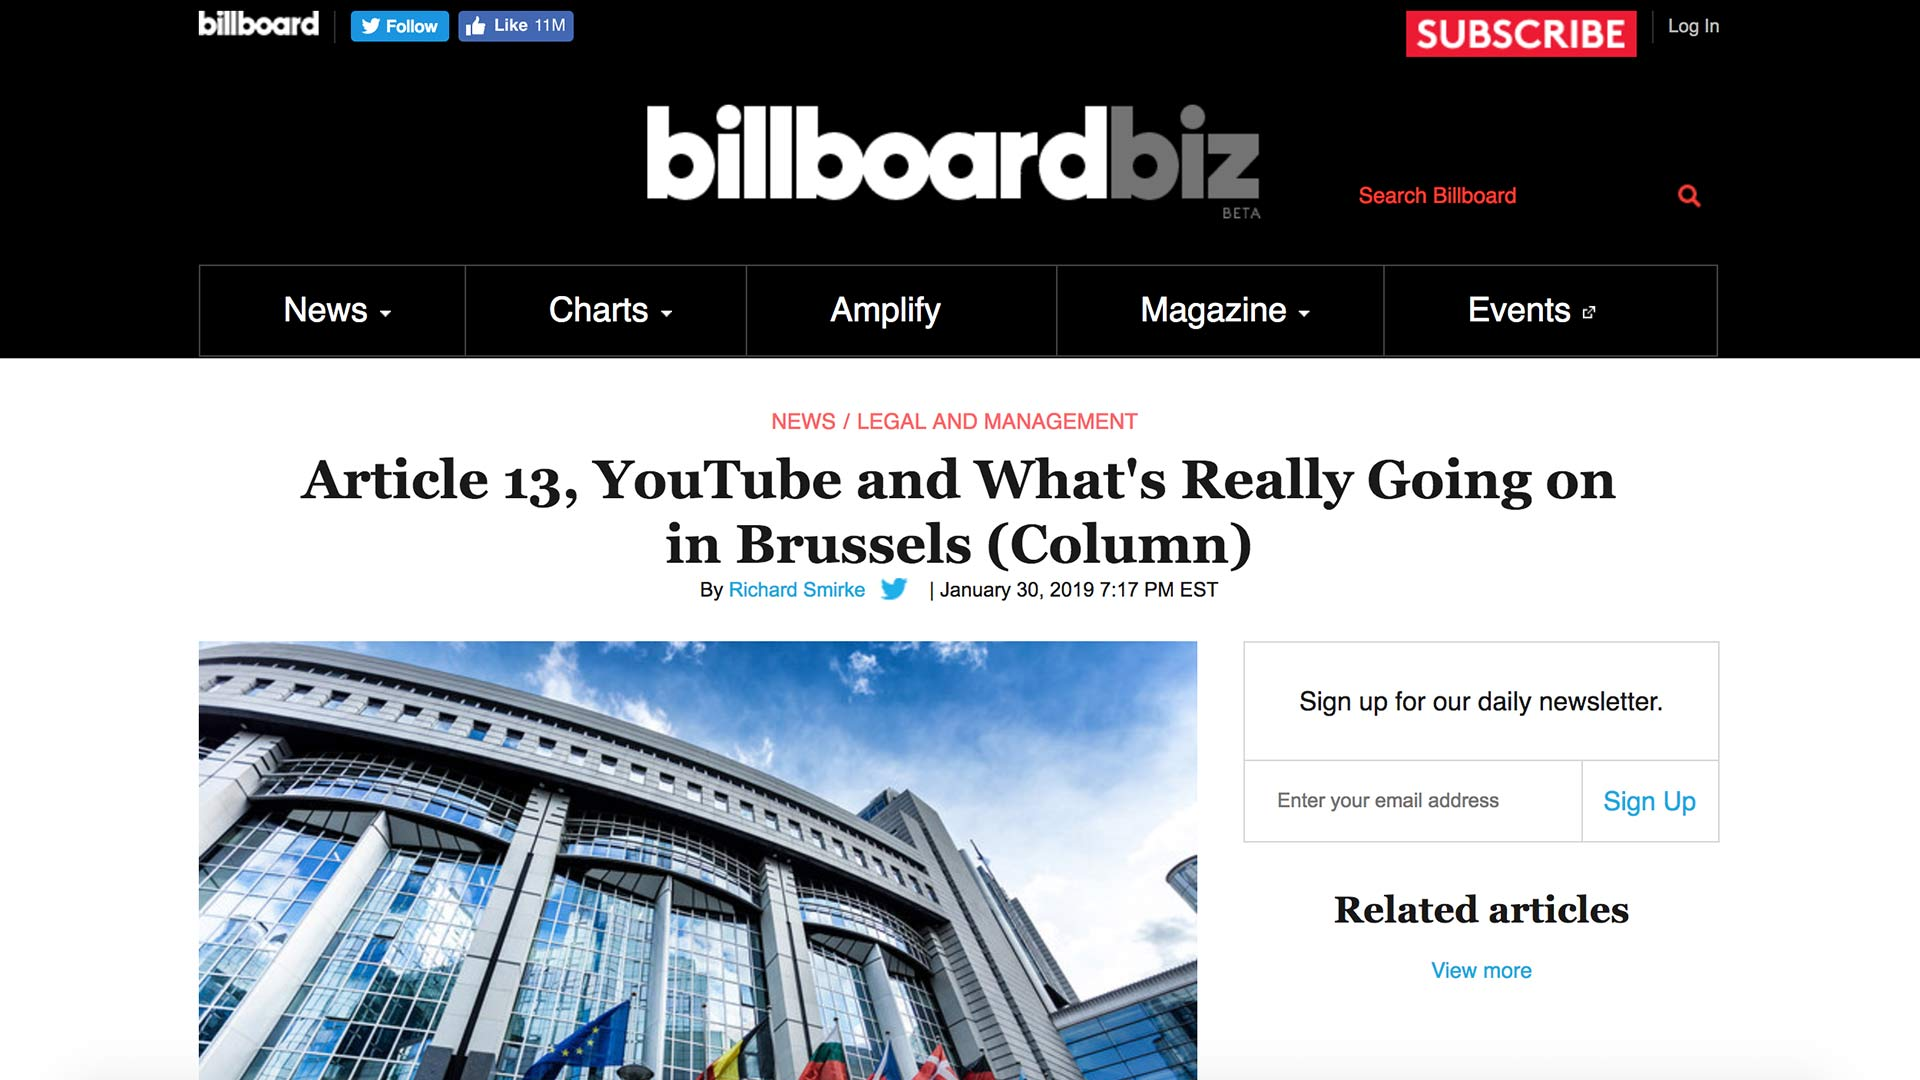 Fairness Rocks News Article 13, YouTube and What's Really Going on in Brussels (Column)